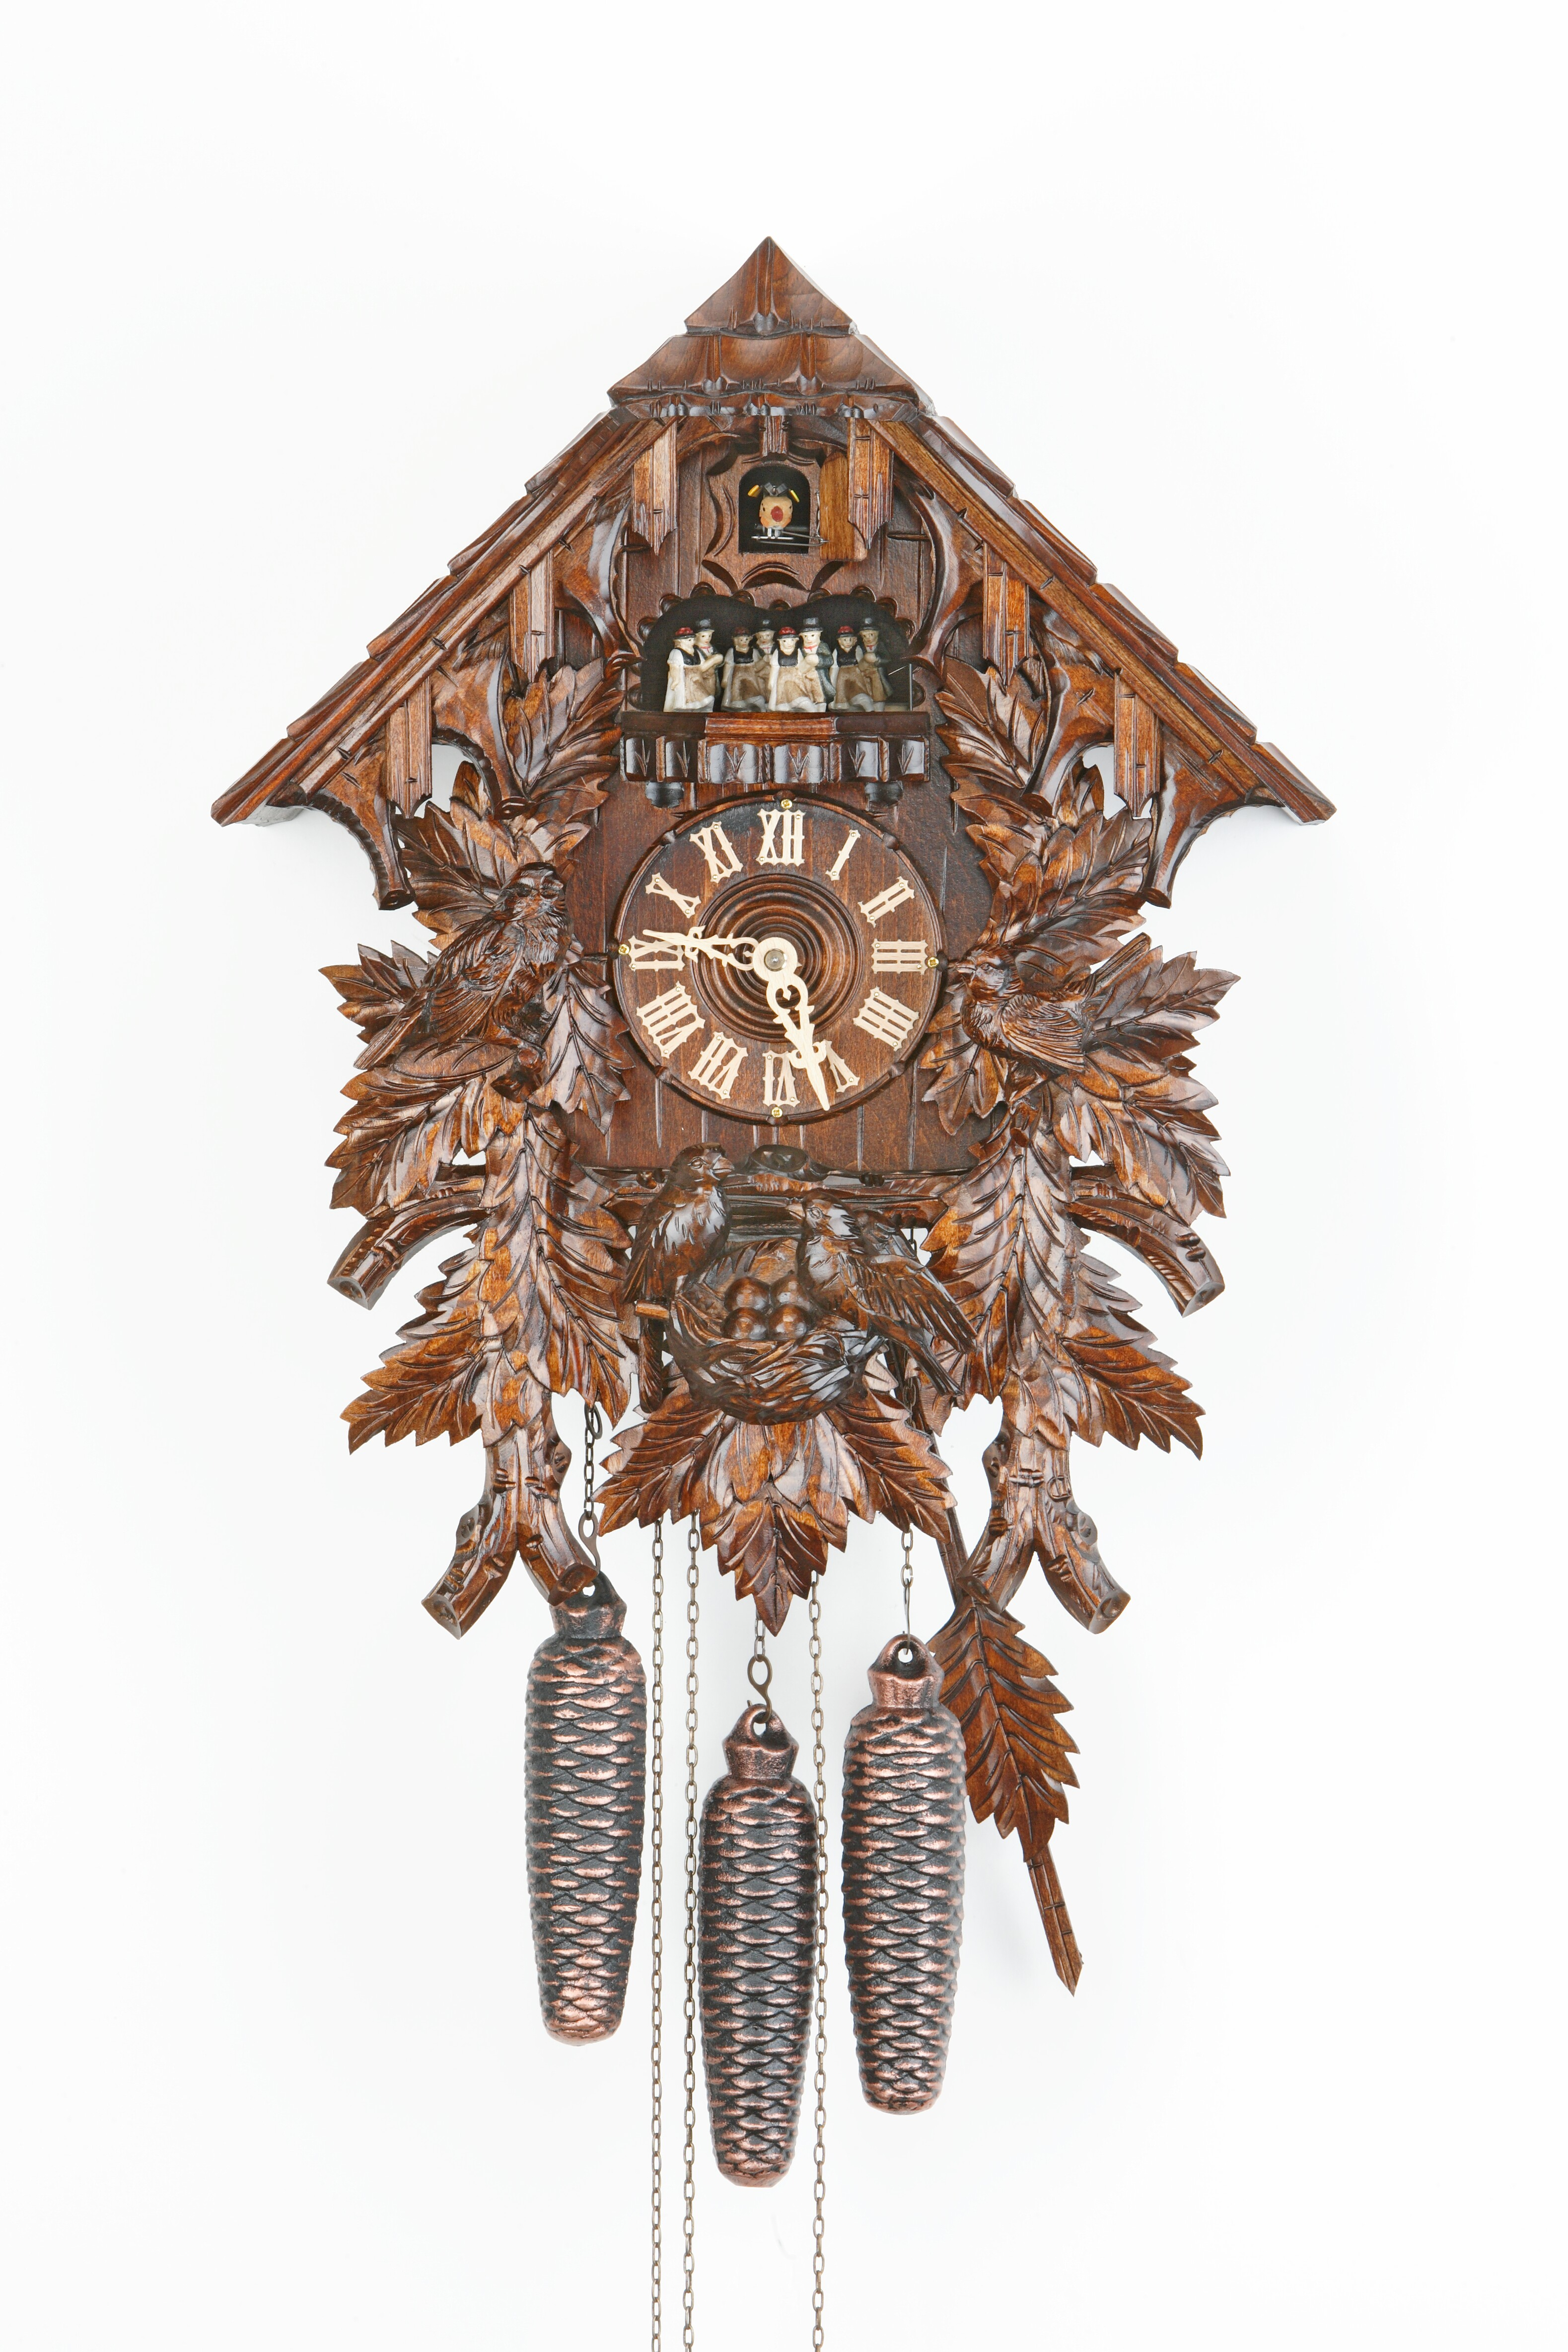 8 Days Music Dancer  Cuckoo Clock Black Forest House with bird family